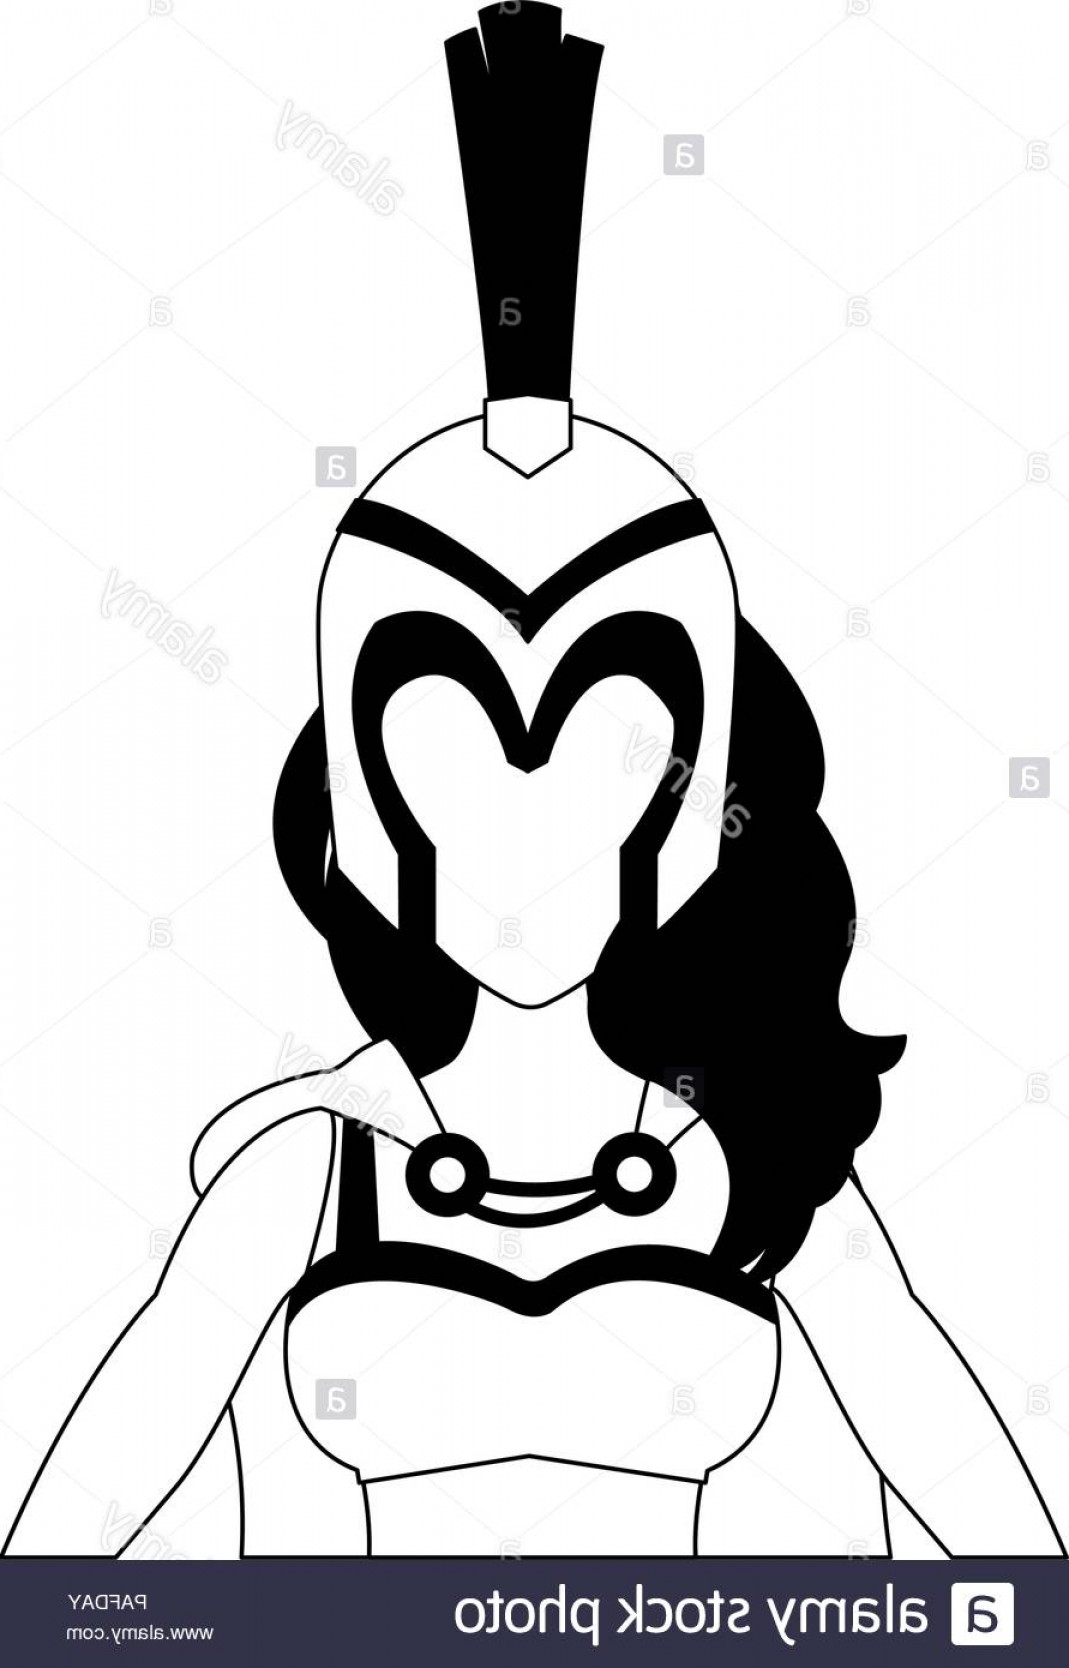 Warrior Vector Art: Medieval Woman Warrior Cartoon Vector Illustration Graphic Design Image